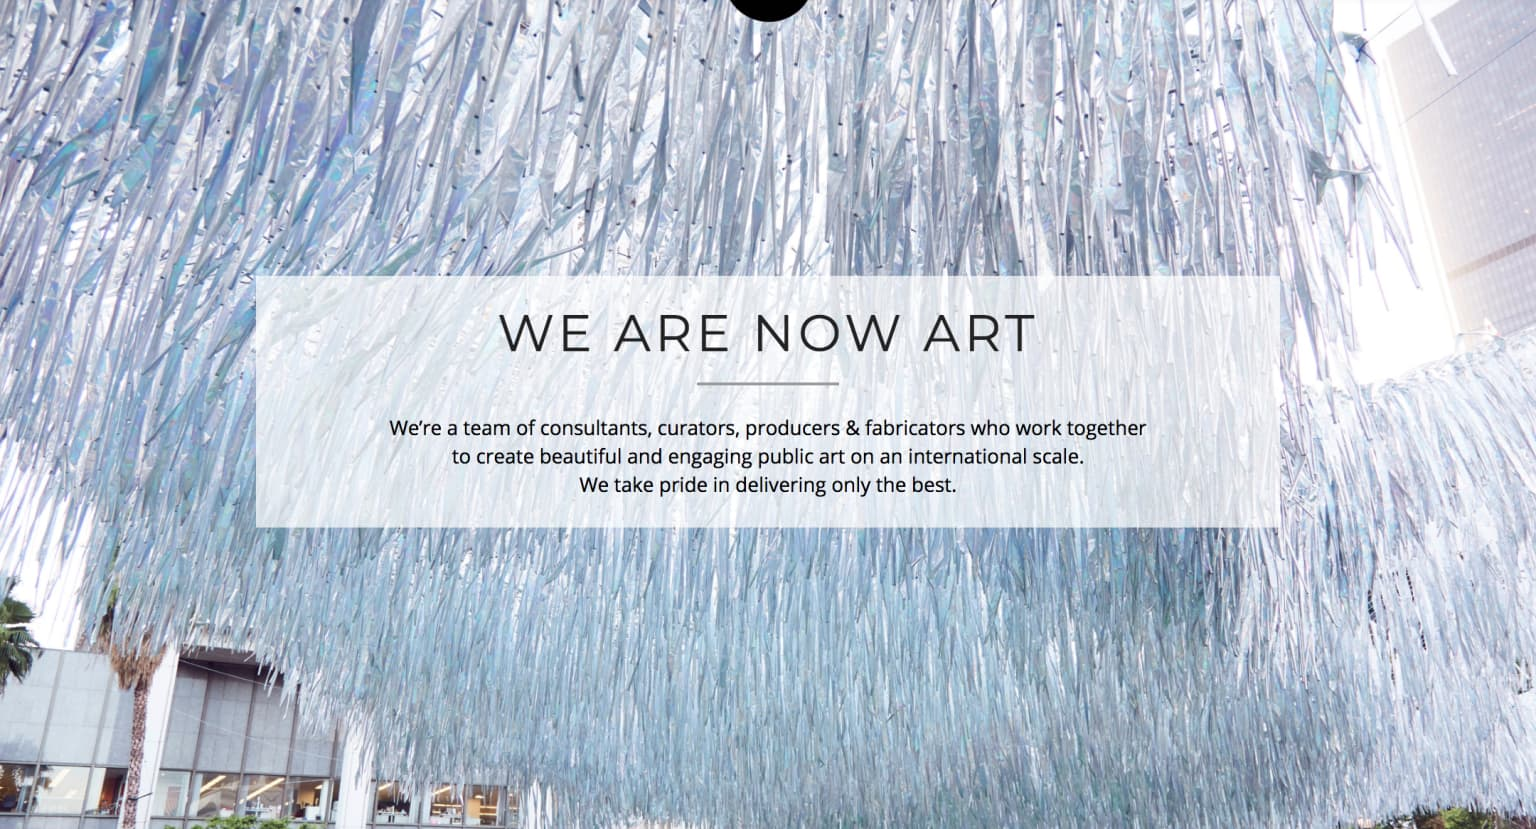 Now Art Website Relaunch